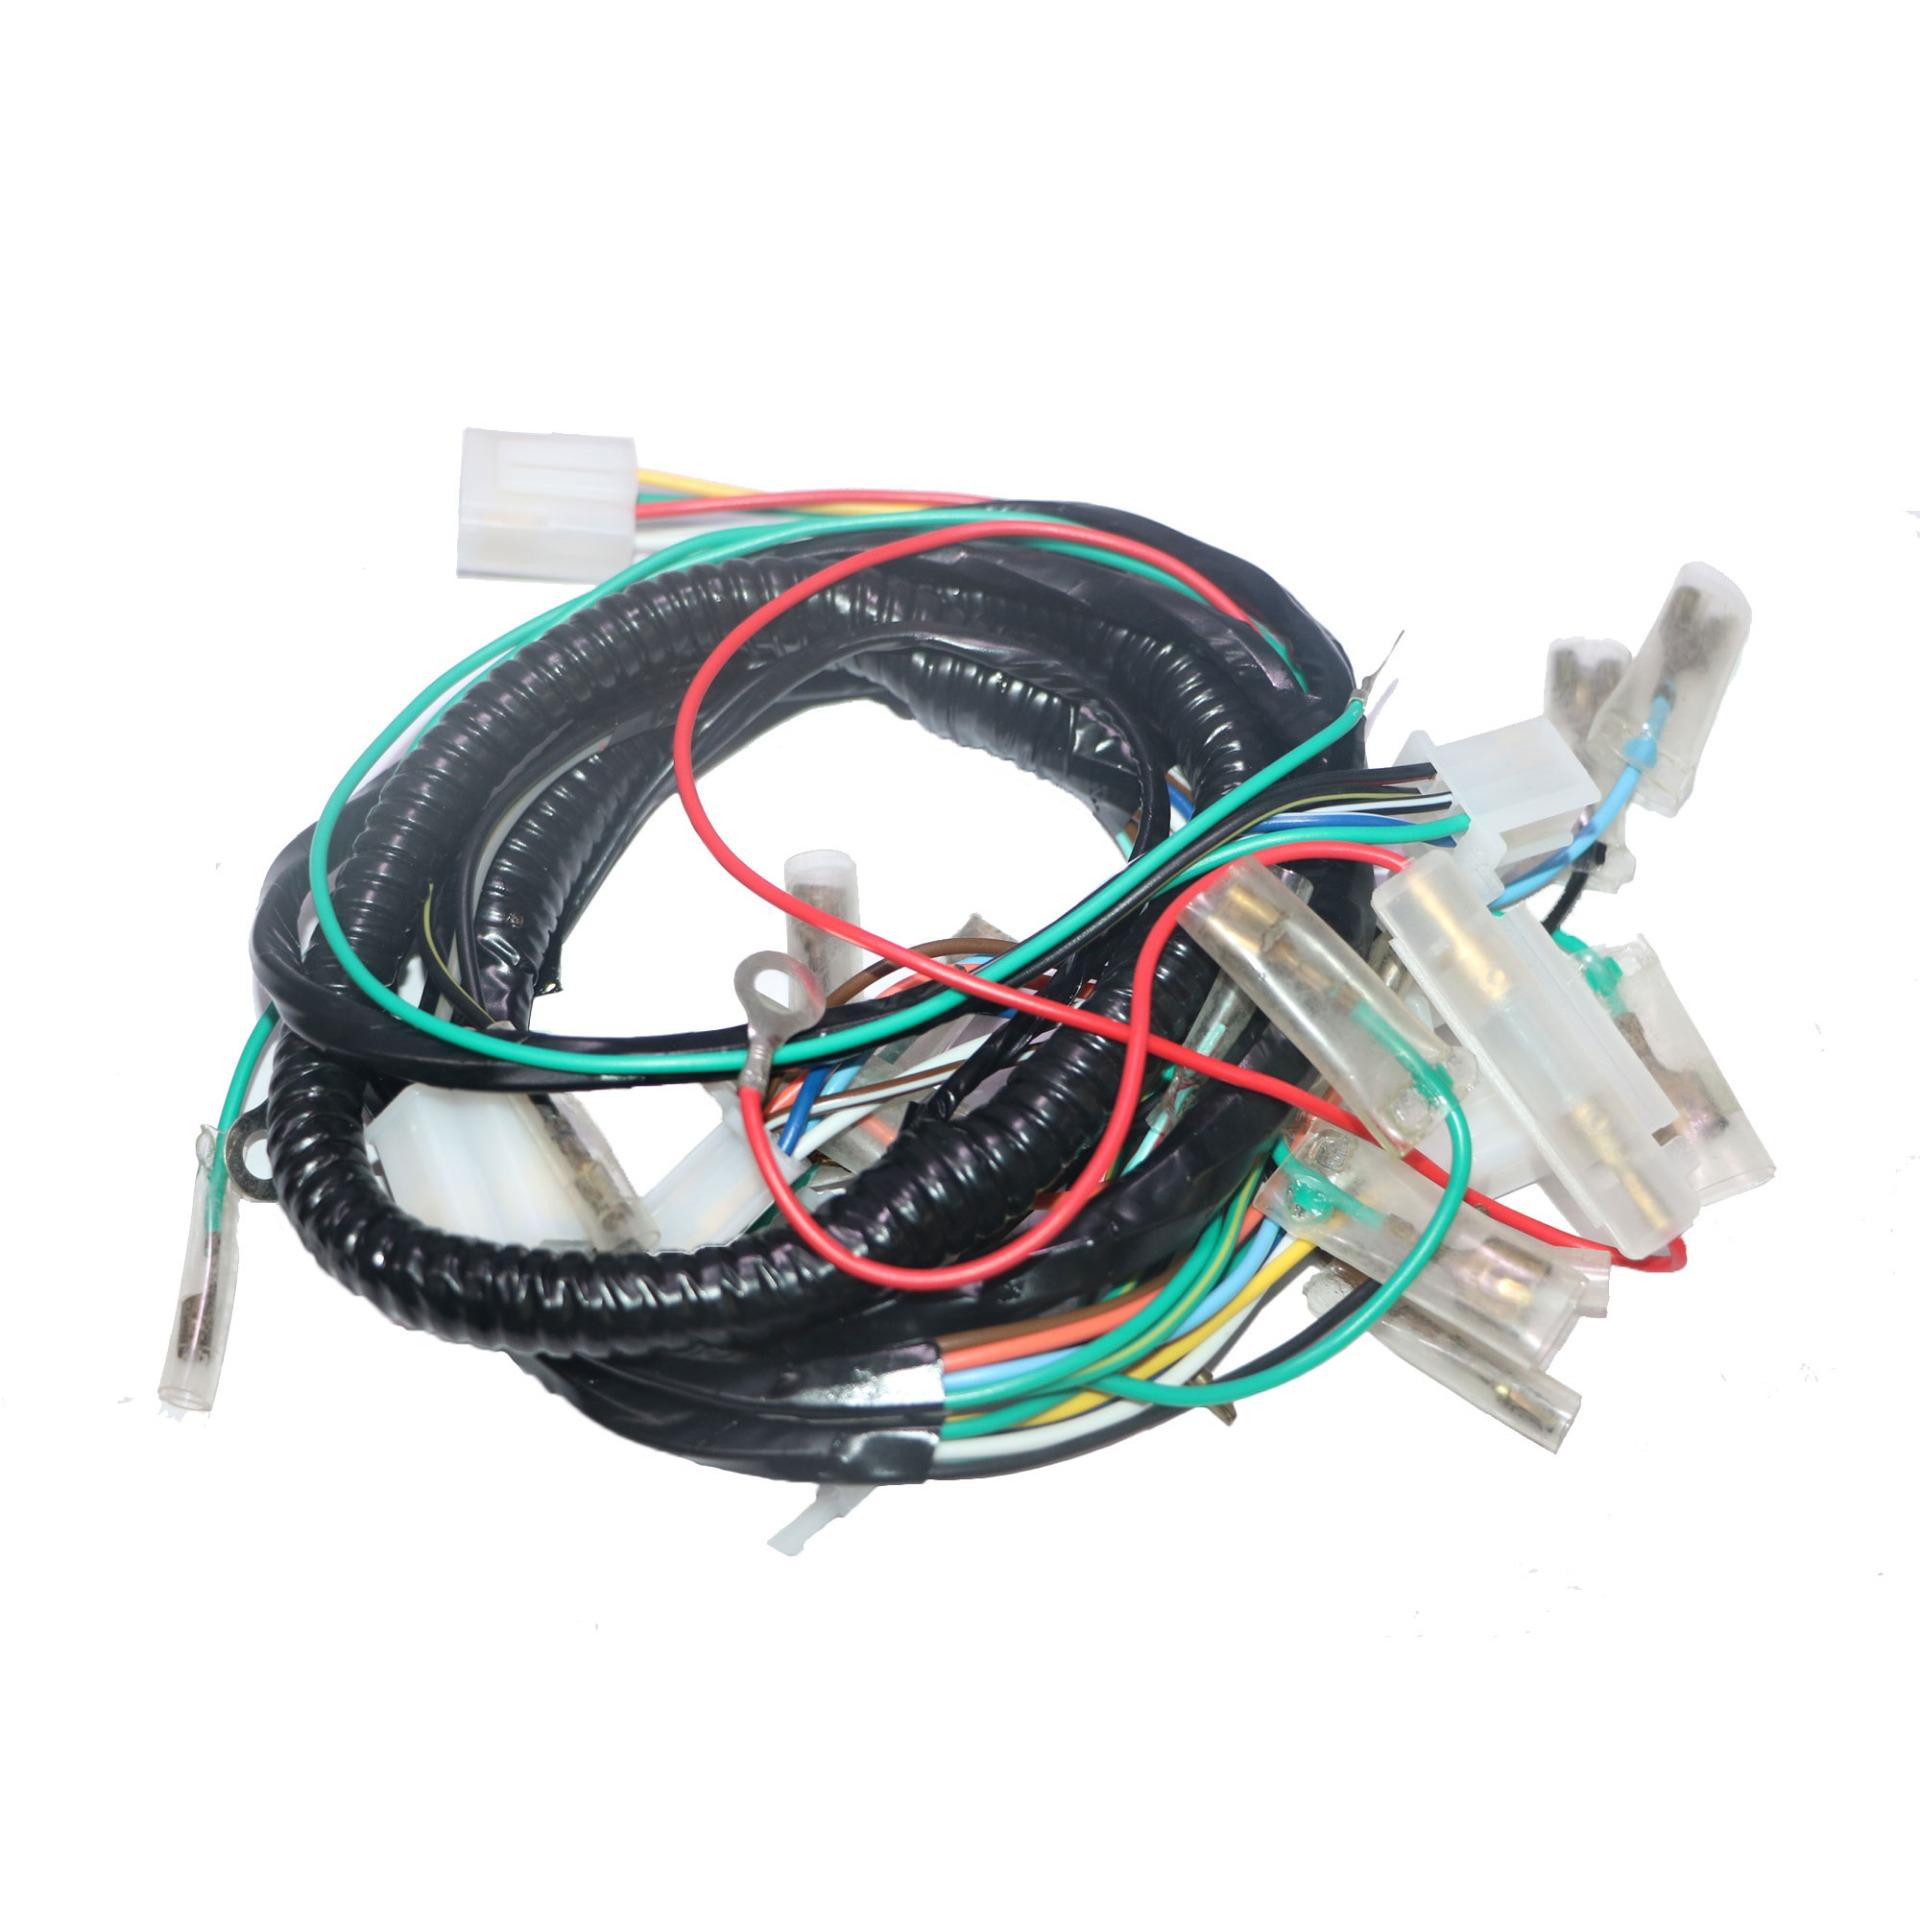 hight resolution of product details of wire harness honda tmx 155 125 9801 493